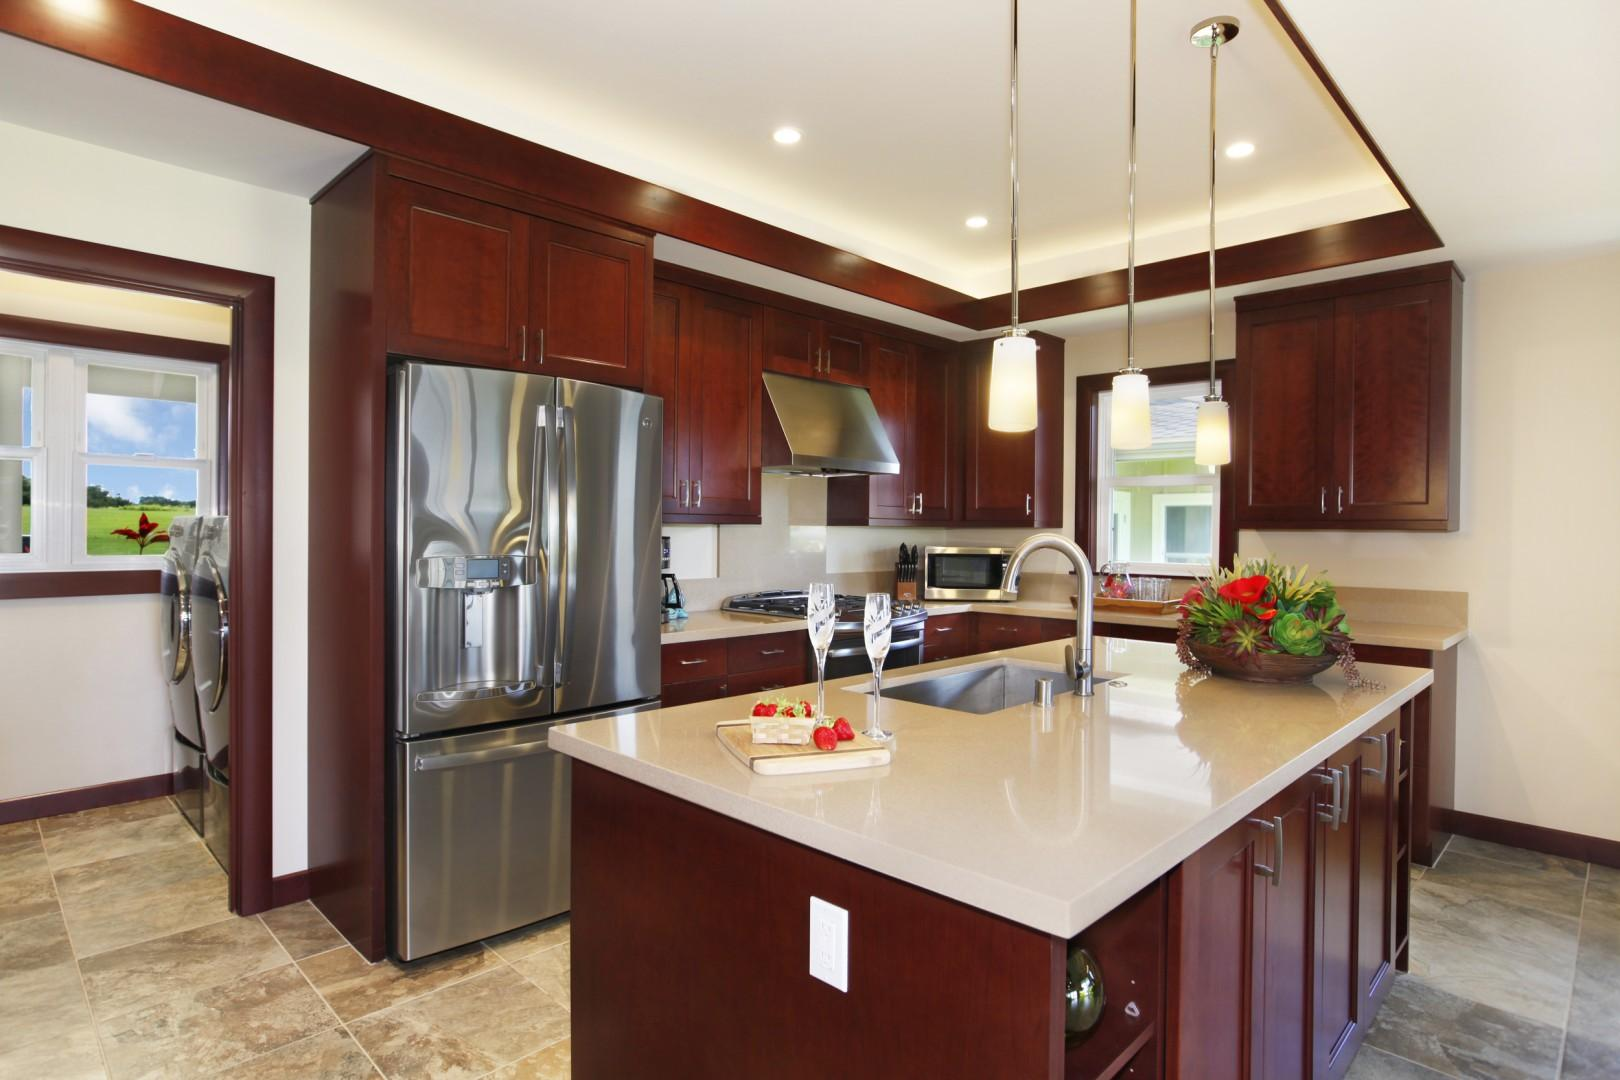 Well equipped brand new kitchen with high-end appliances and gas range.